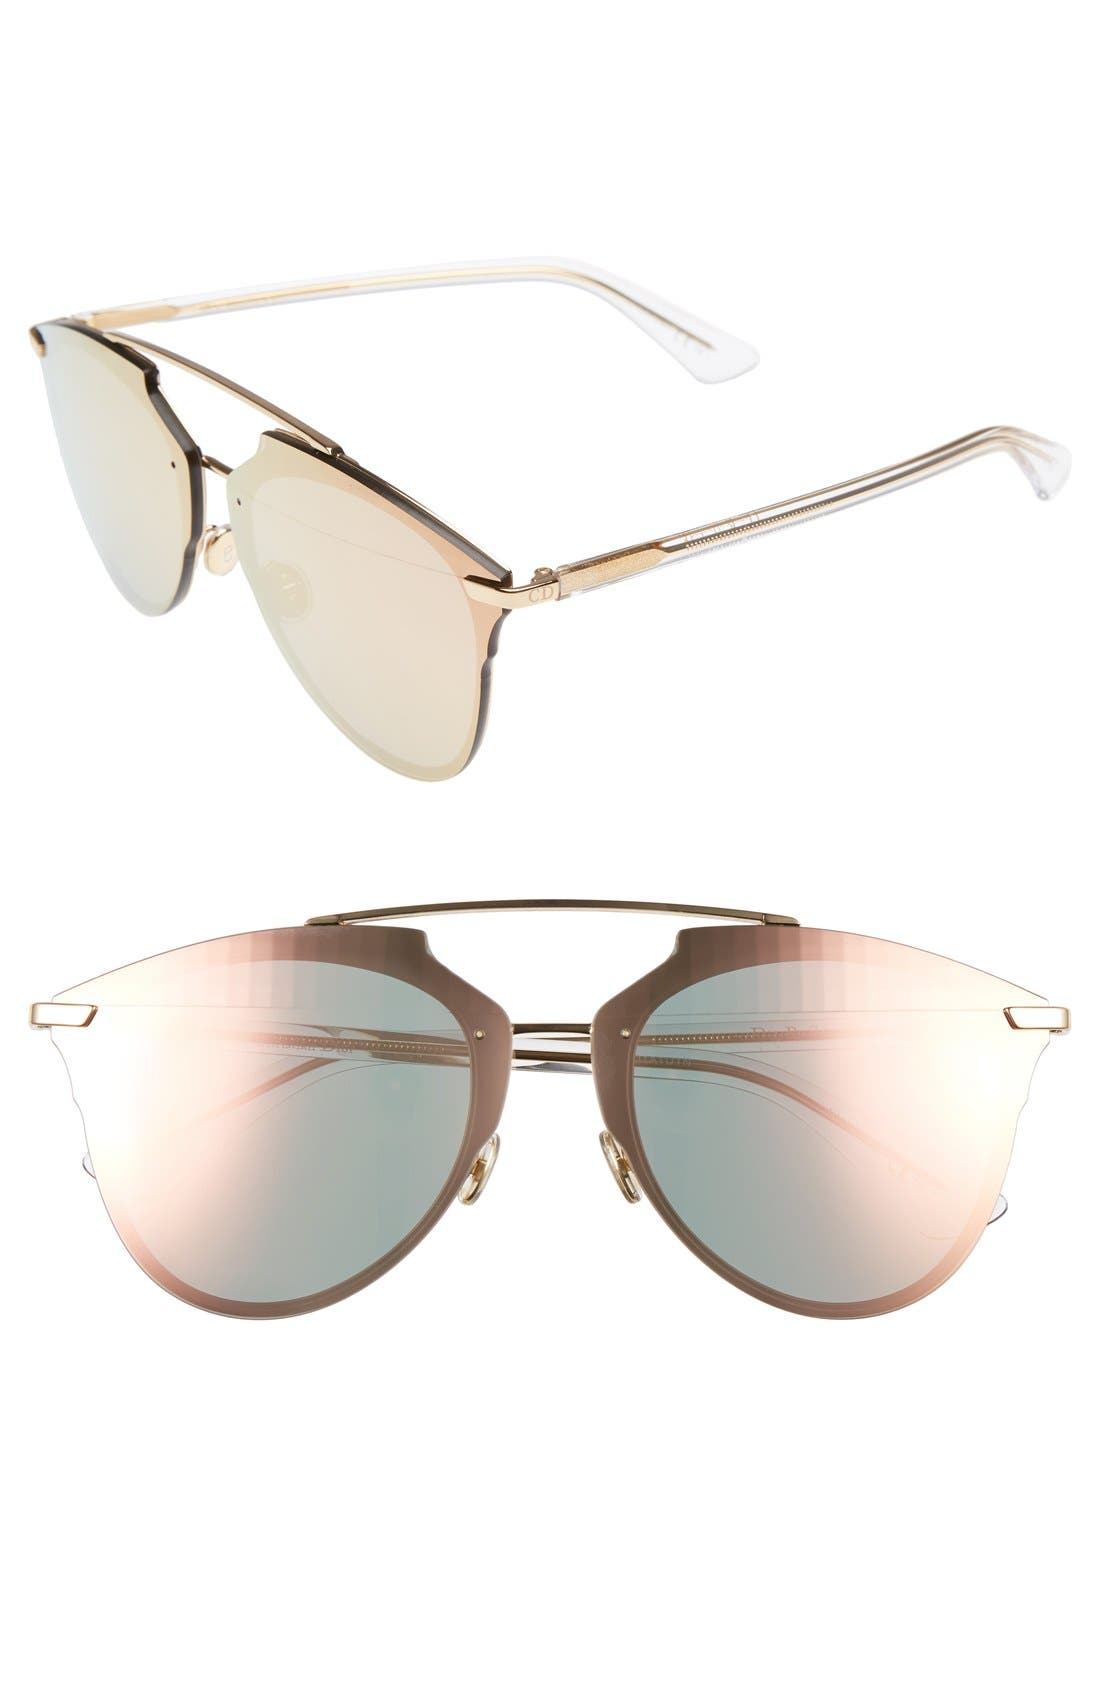 Reflected Prism 63mm Oversize Mirrored Brow Bar Sunglasses,                             Main thumbnail 1, color,                             Gold/ Crystal